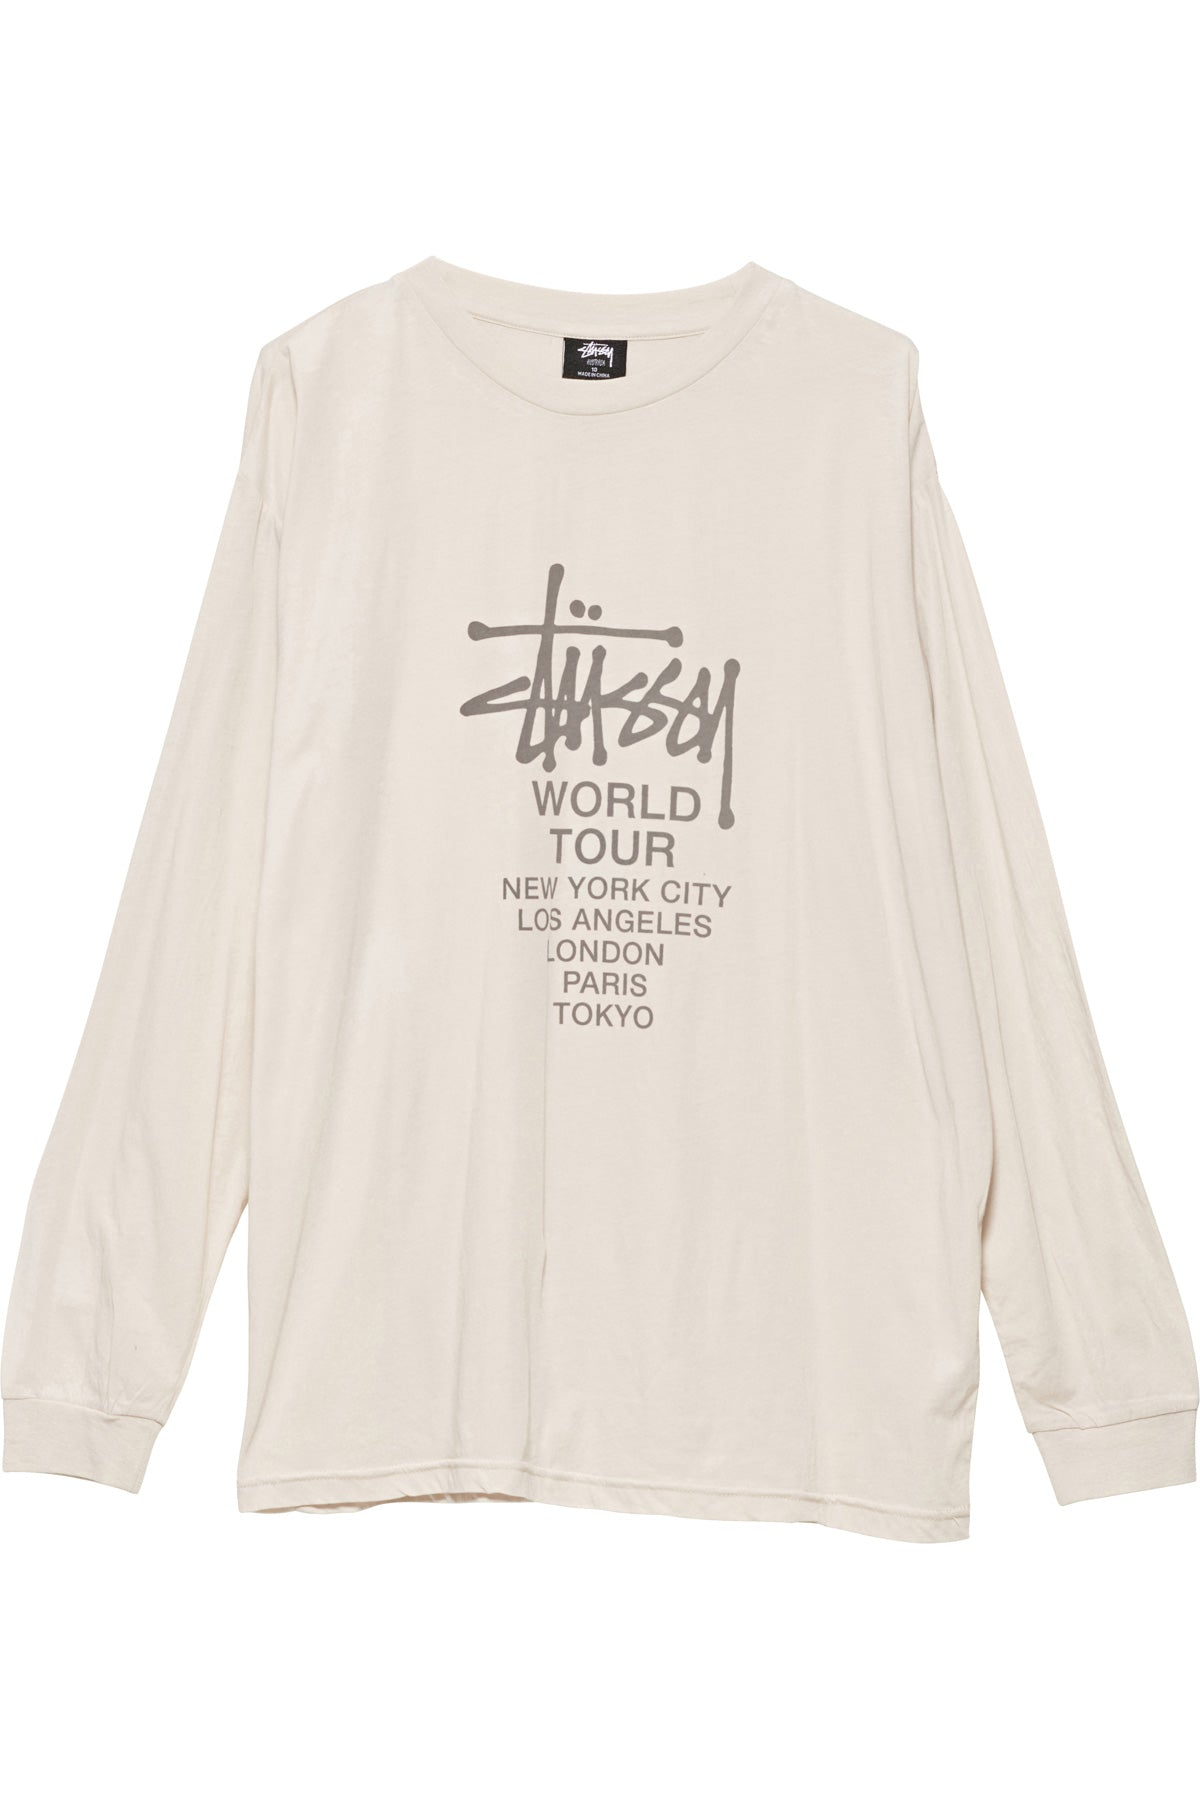 World Tour Tee - R8gzwear